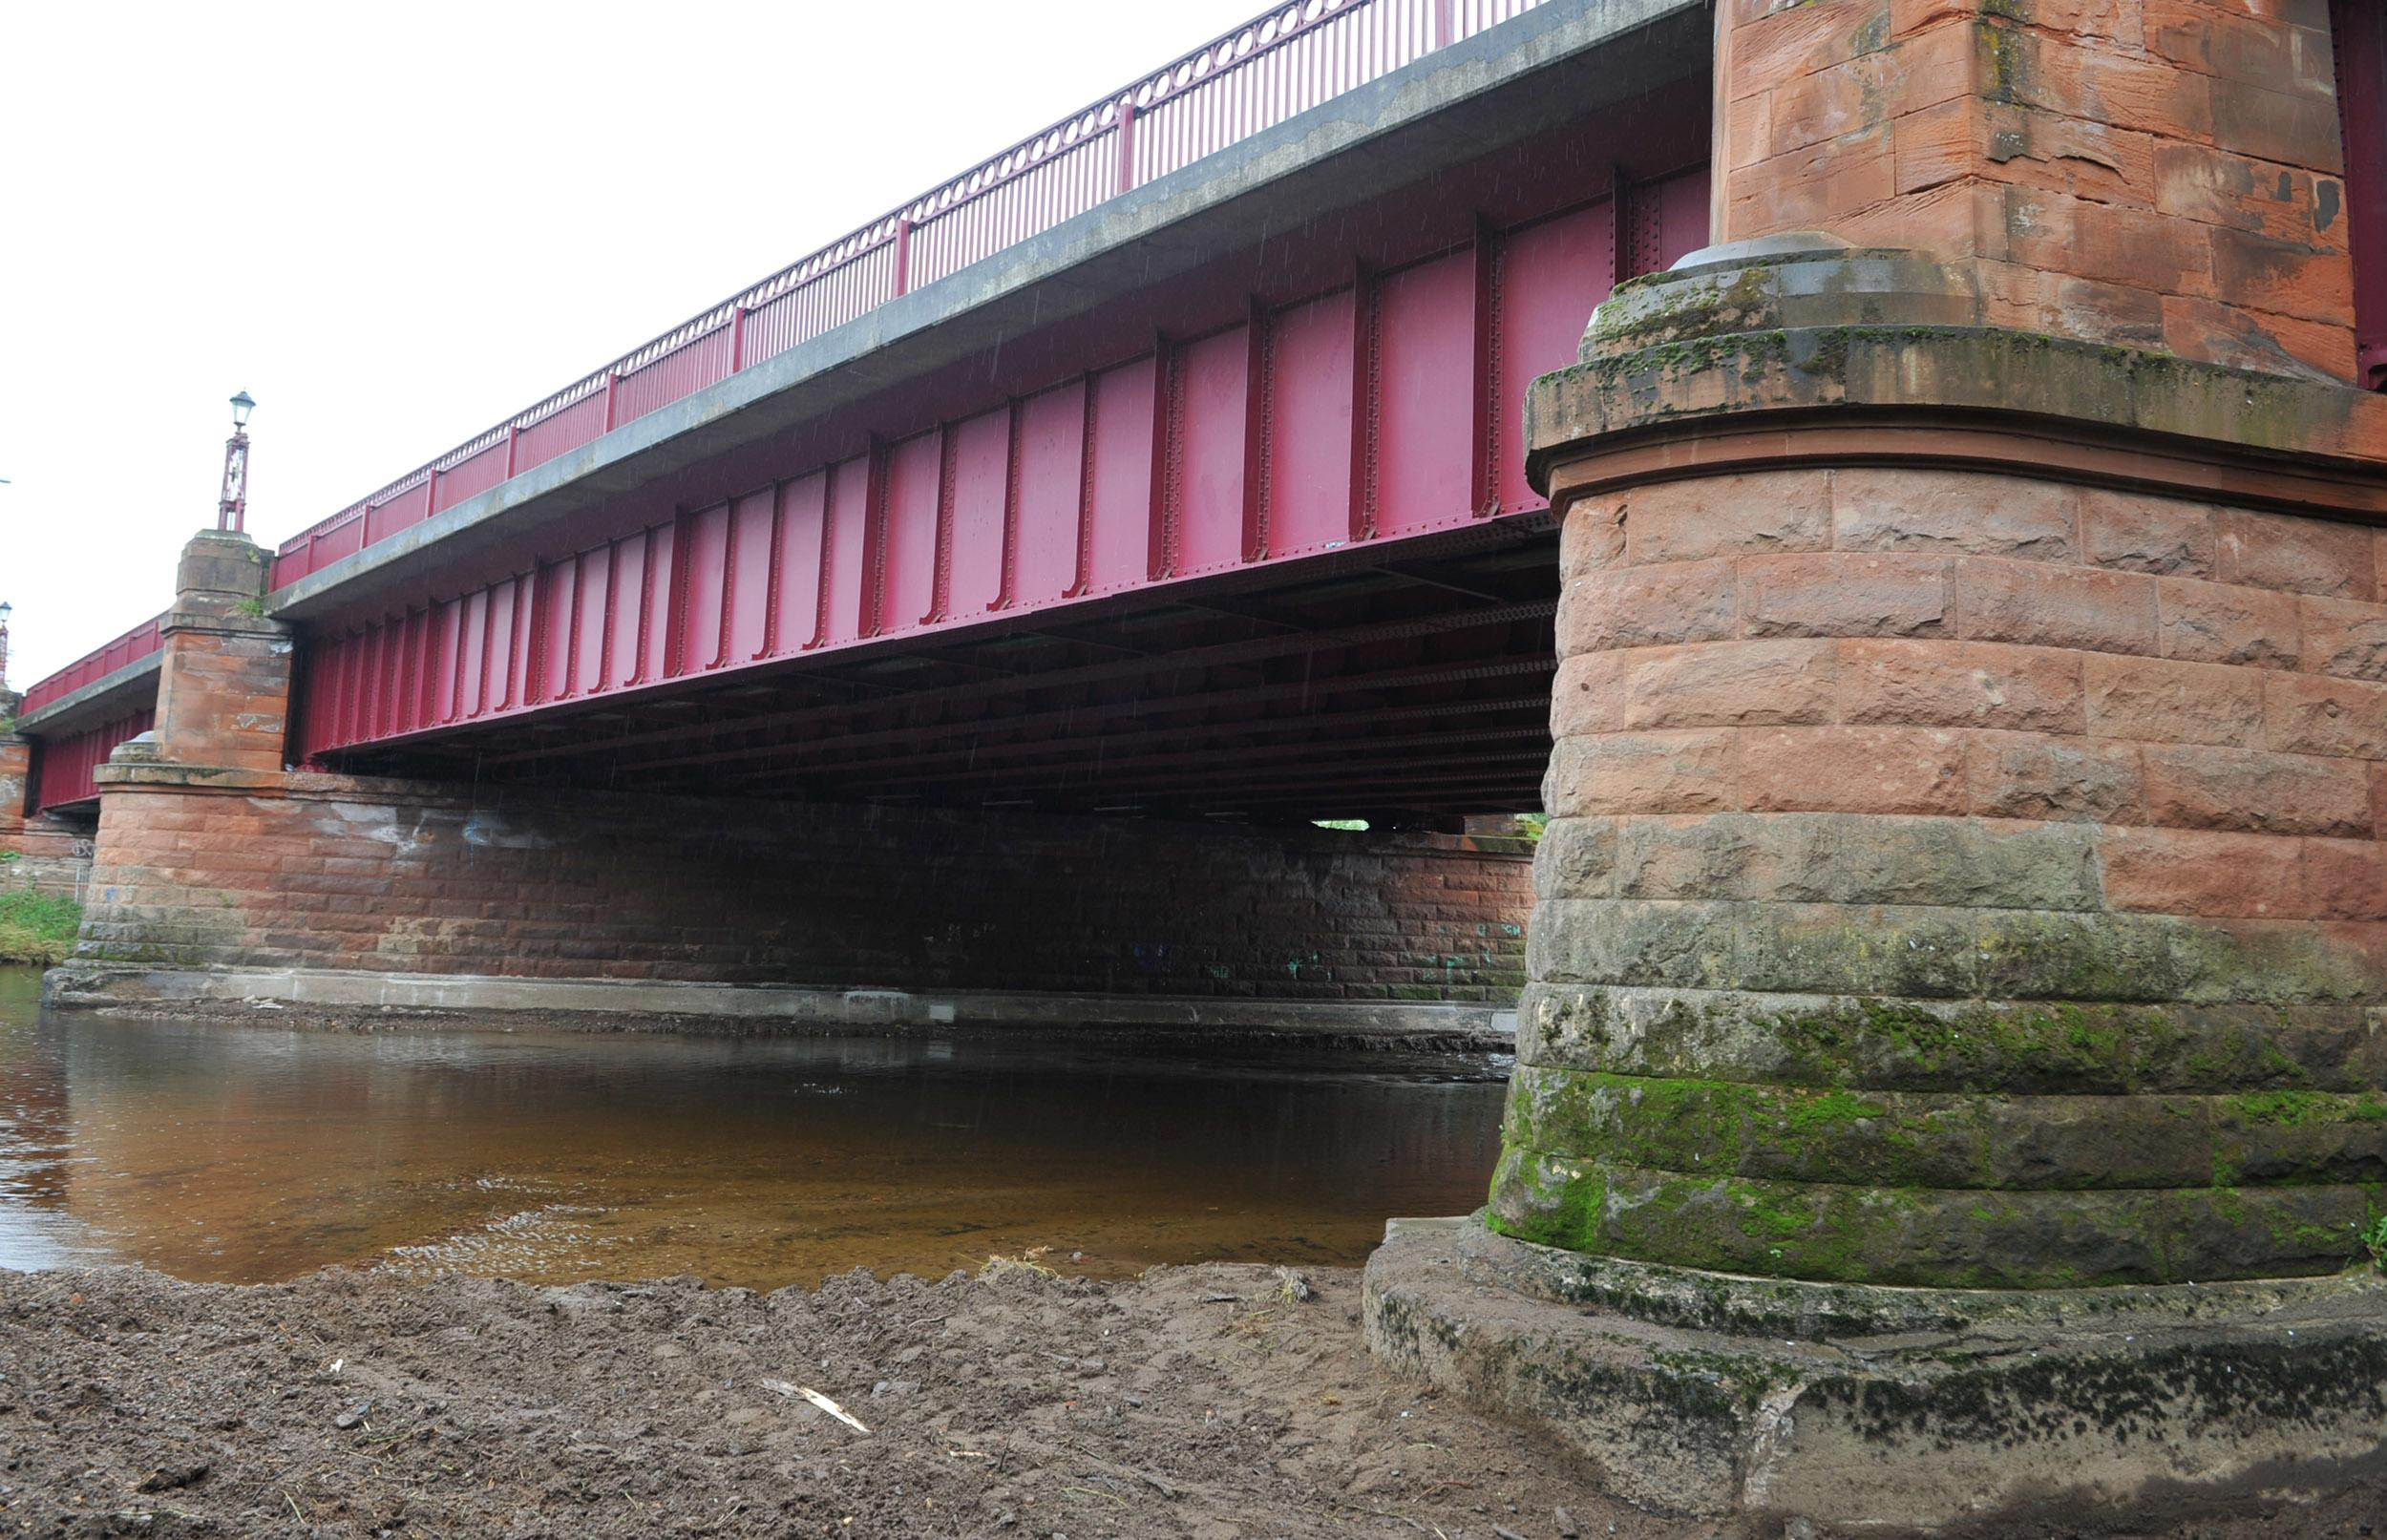 view of underside of Clyde Bridge